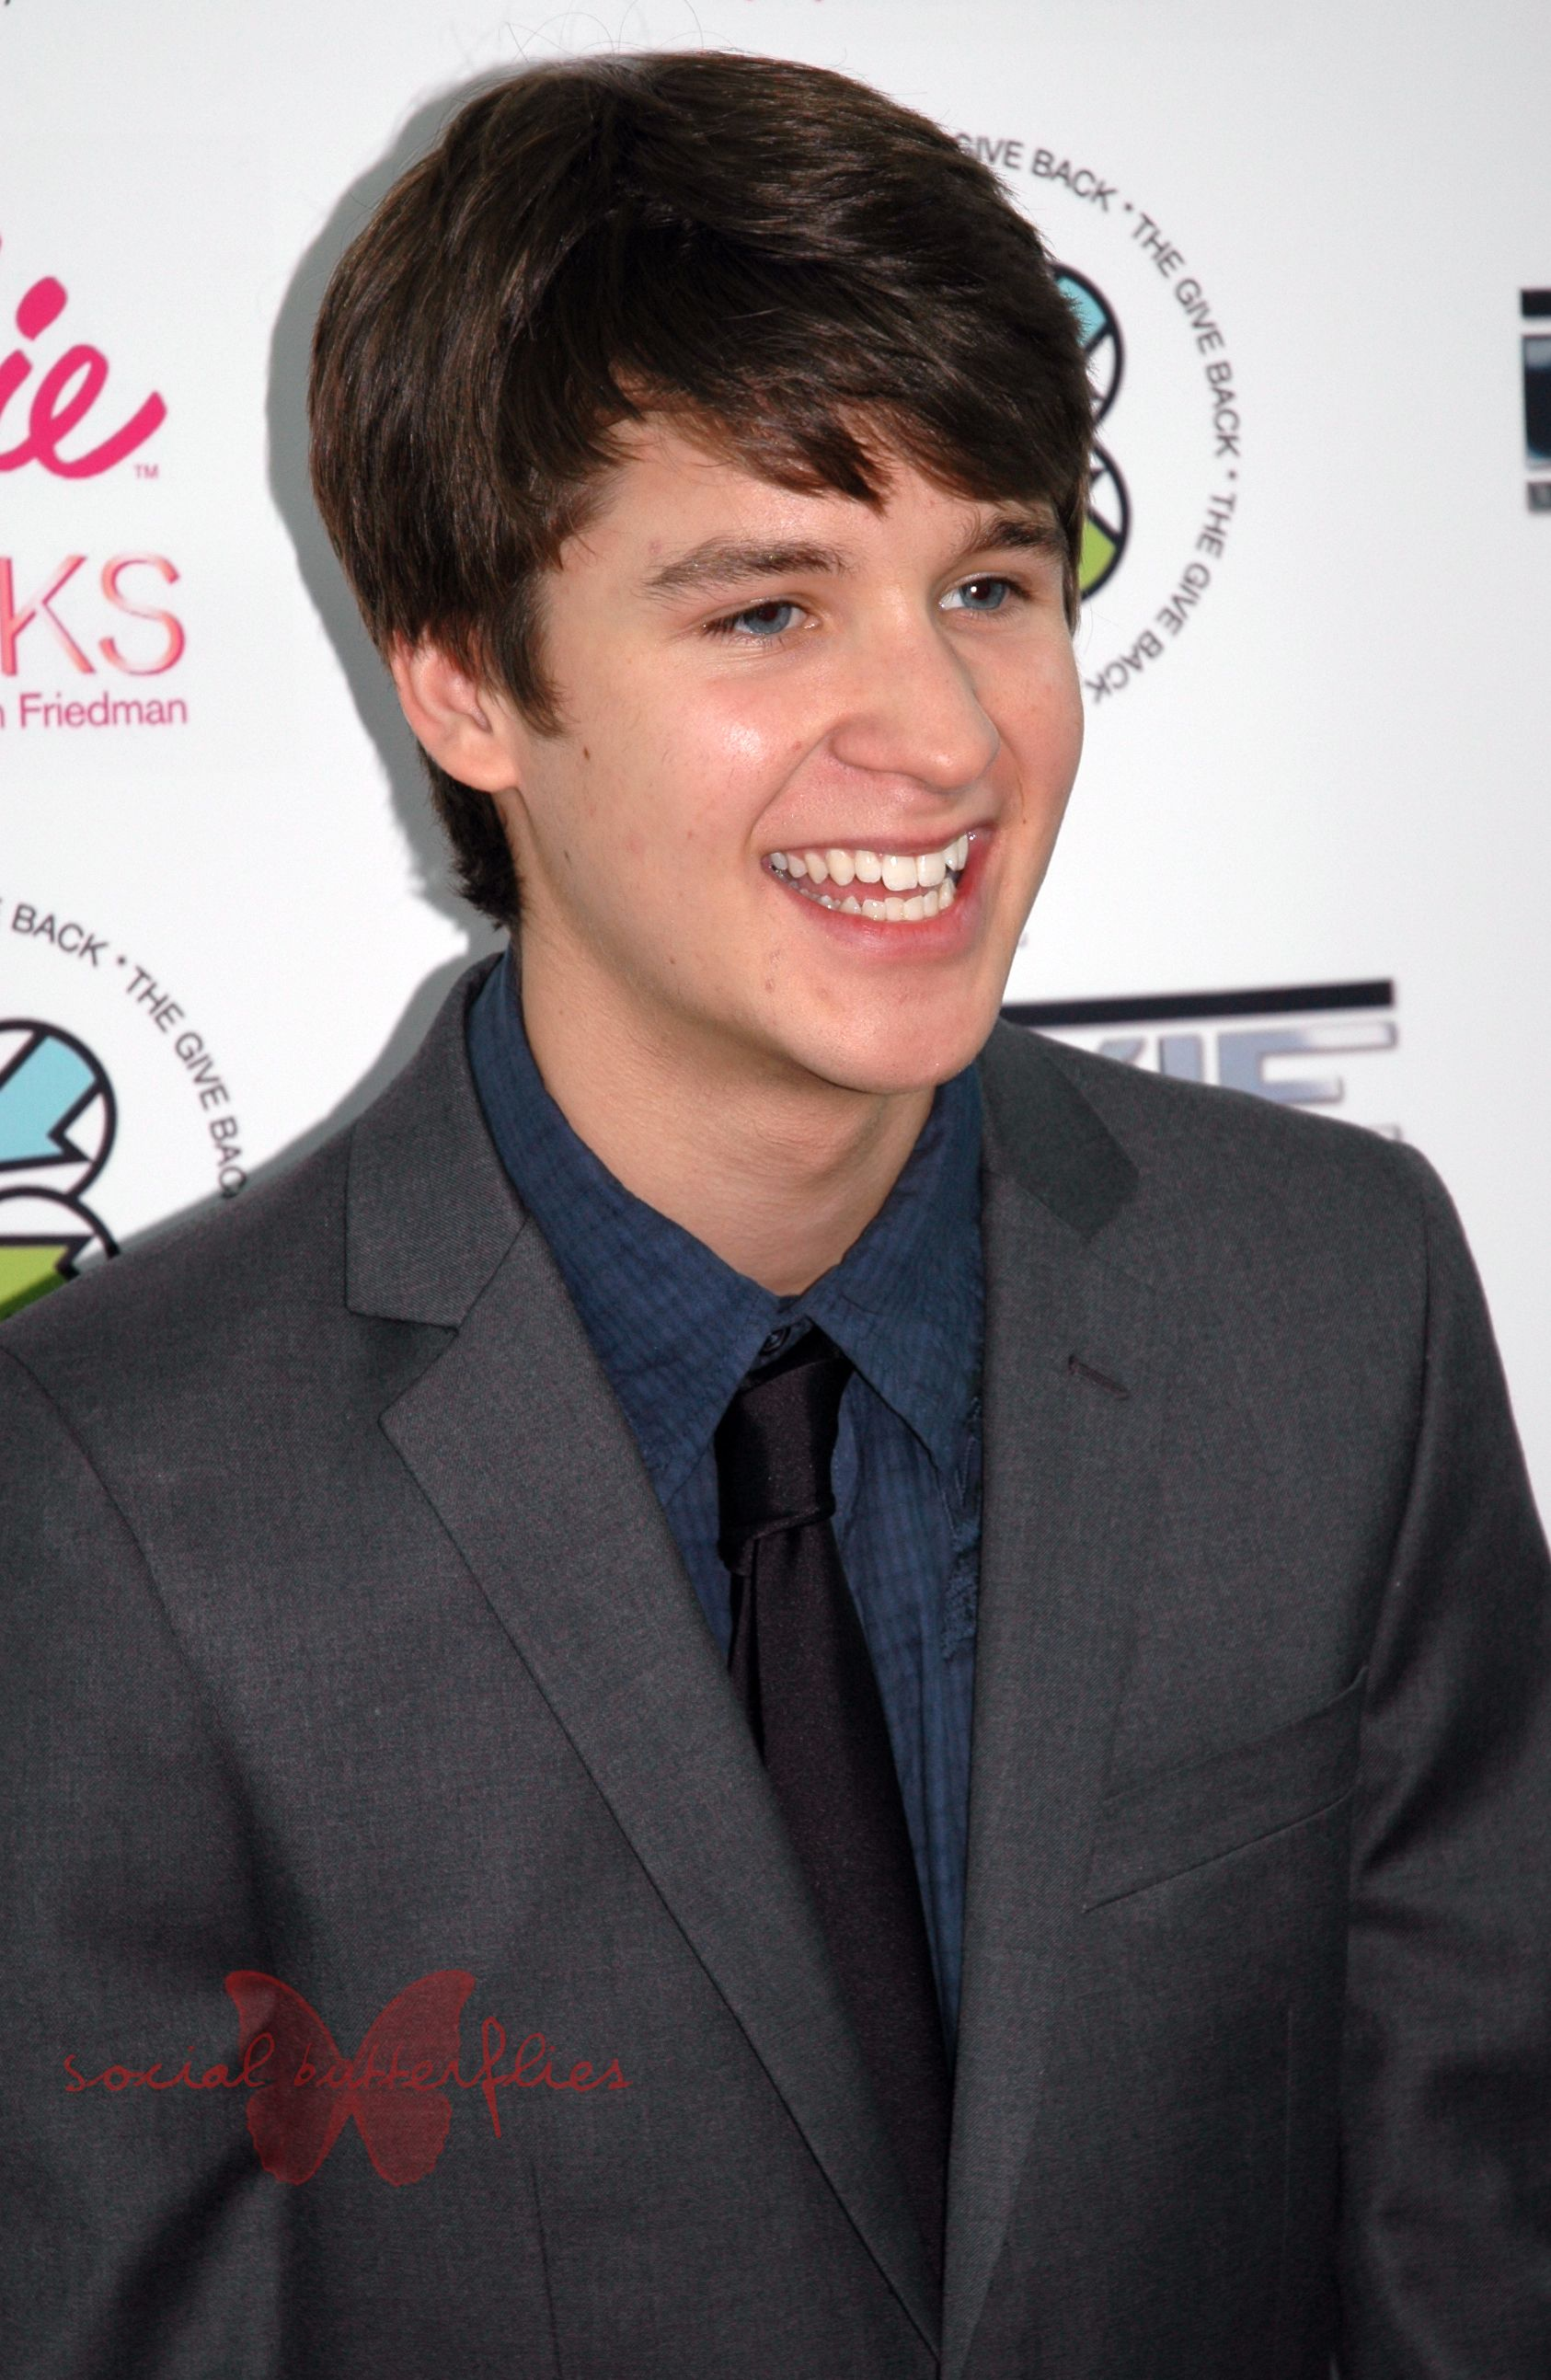 devon werkheiser filmedevon werkheiser - crowns, devon werkheiser filme, devon werkheiser wiki, devon werkheiser instagram, devon werkheiser, devon werkheiser 2015, devon werkheiser twitter, devon werkheiser if eyes could speak lyrics, devon werkheiser википедия, devon werkheiser net worth, devon werkheiser y lindsey shaw, devon werkheiser age, devon werkheiser criminal minds, devon werkheiser shirtless, devon werkheiser movies, devon werkheiser songs, devon werkheiser fidanzata, devon werkheiser girlfriend, devon werkheiser facebook, devon werkheiser canzoni